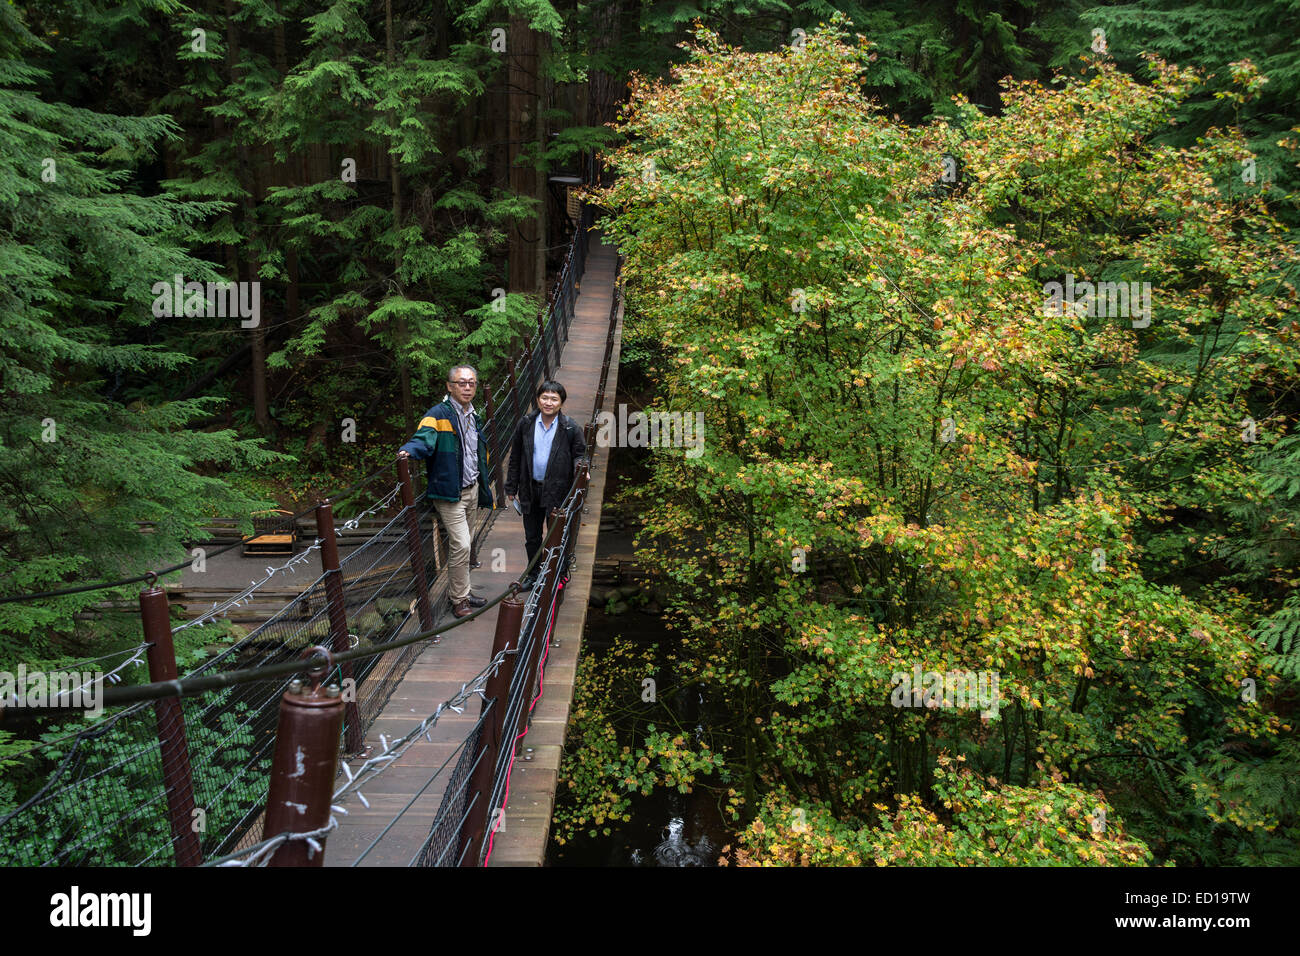 Tree top walk and fall leaves, Capilano Park, Vancouver, British Columbia, Canada - Stock Image